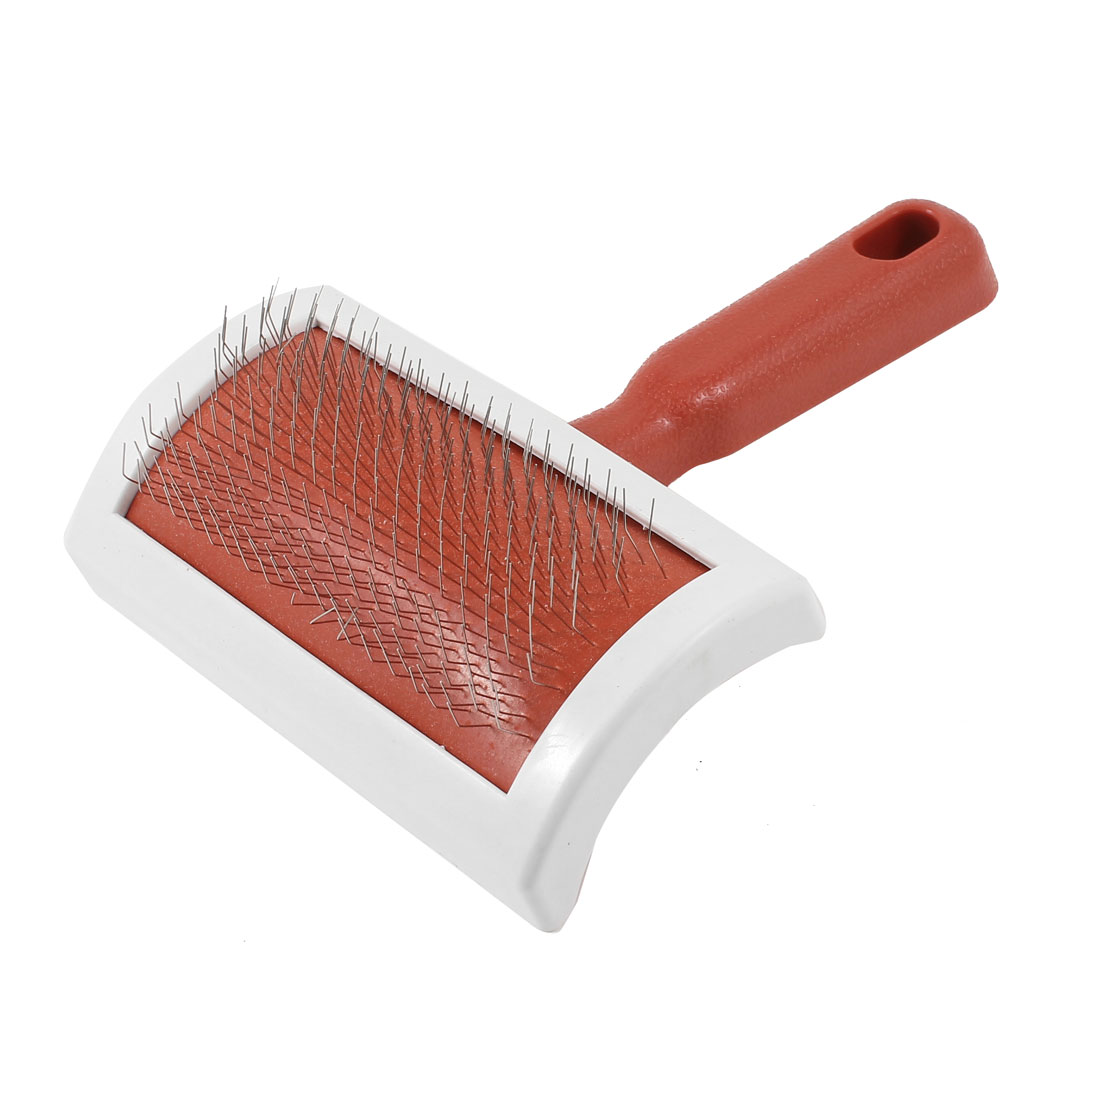 Plastic Grip Metal Wire Cat Dog Hair Brush Comb Pet Grooming Tool Red White